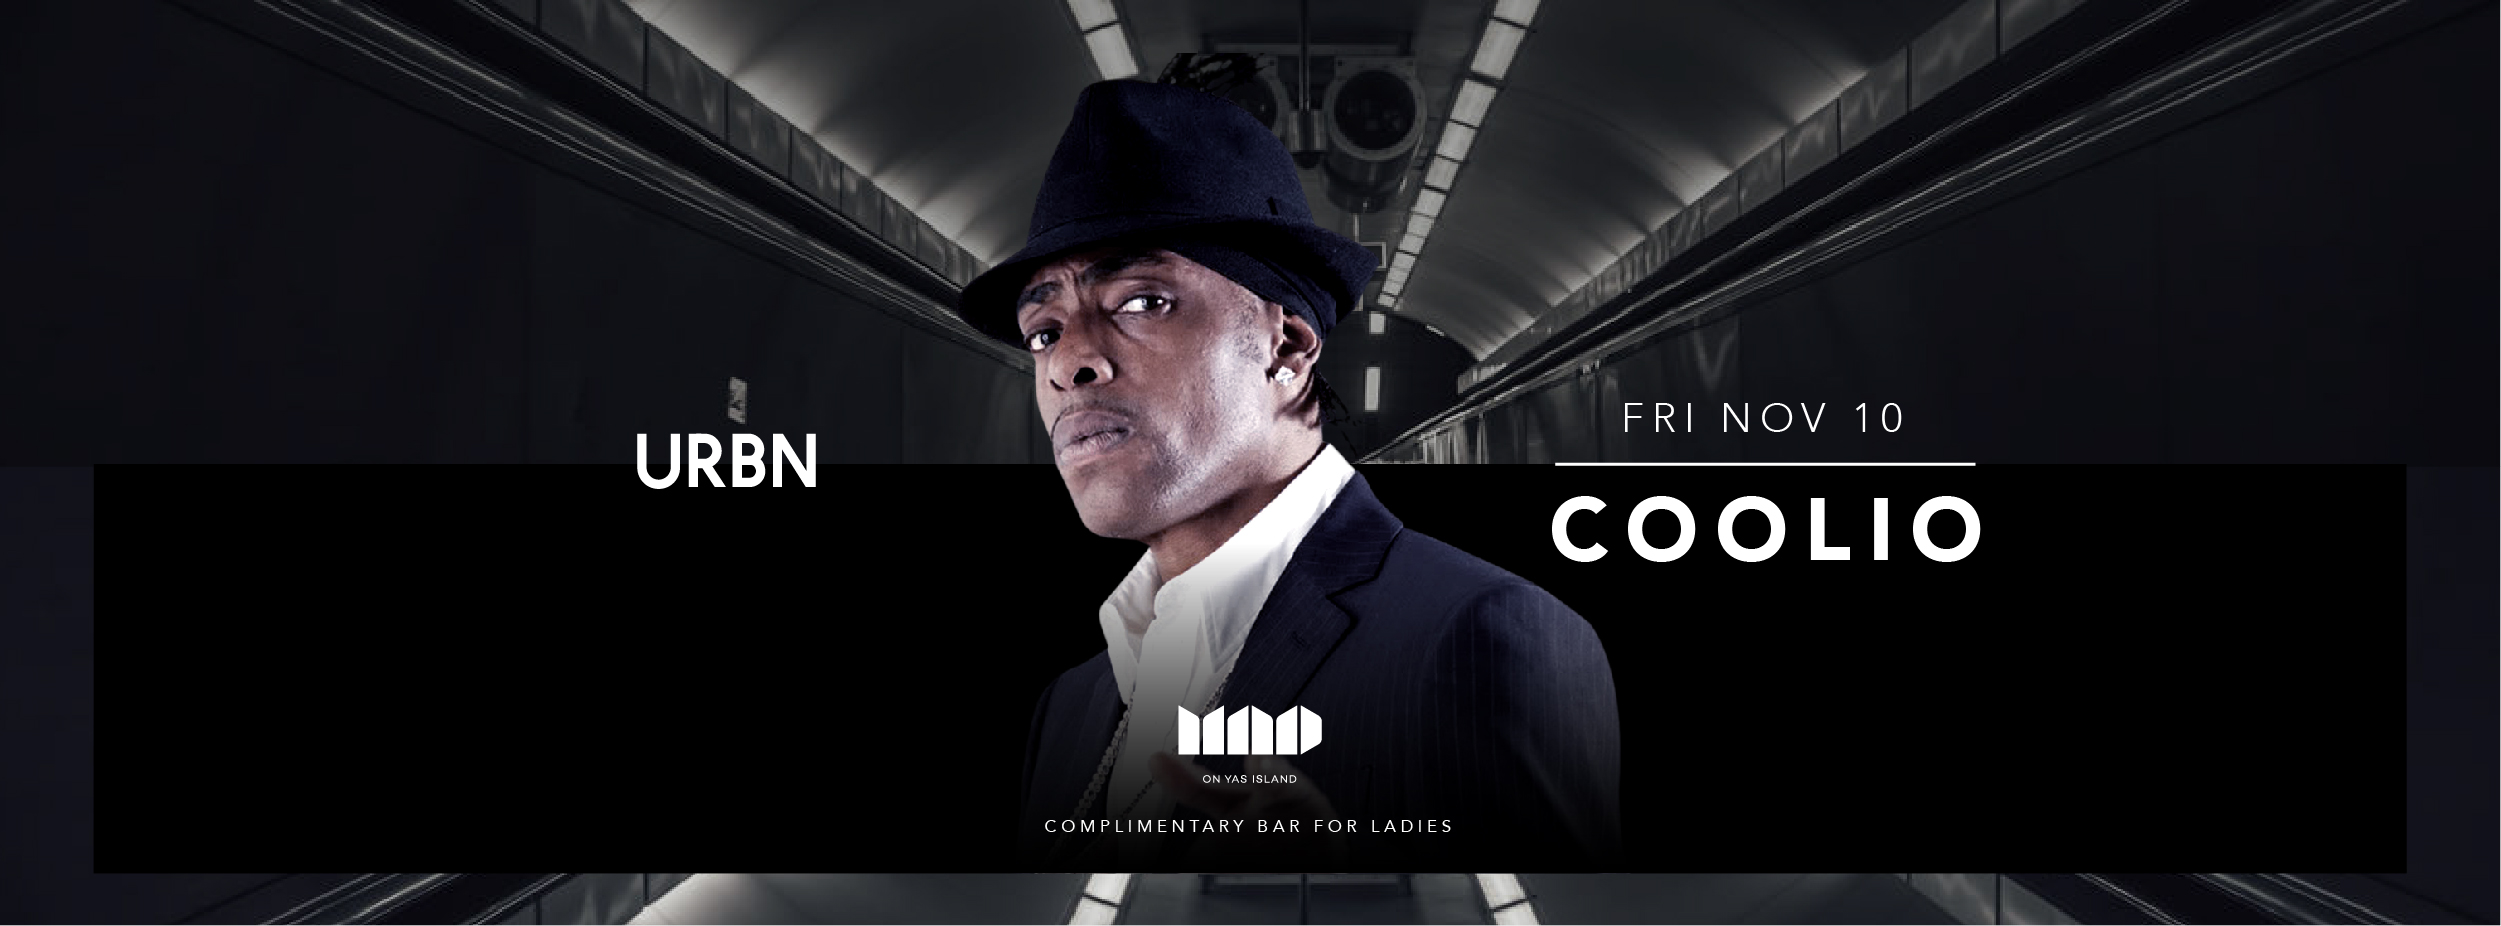 Coolio @ Mad on Yas Island